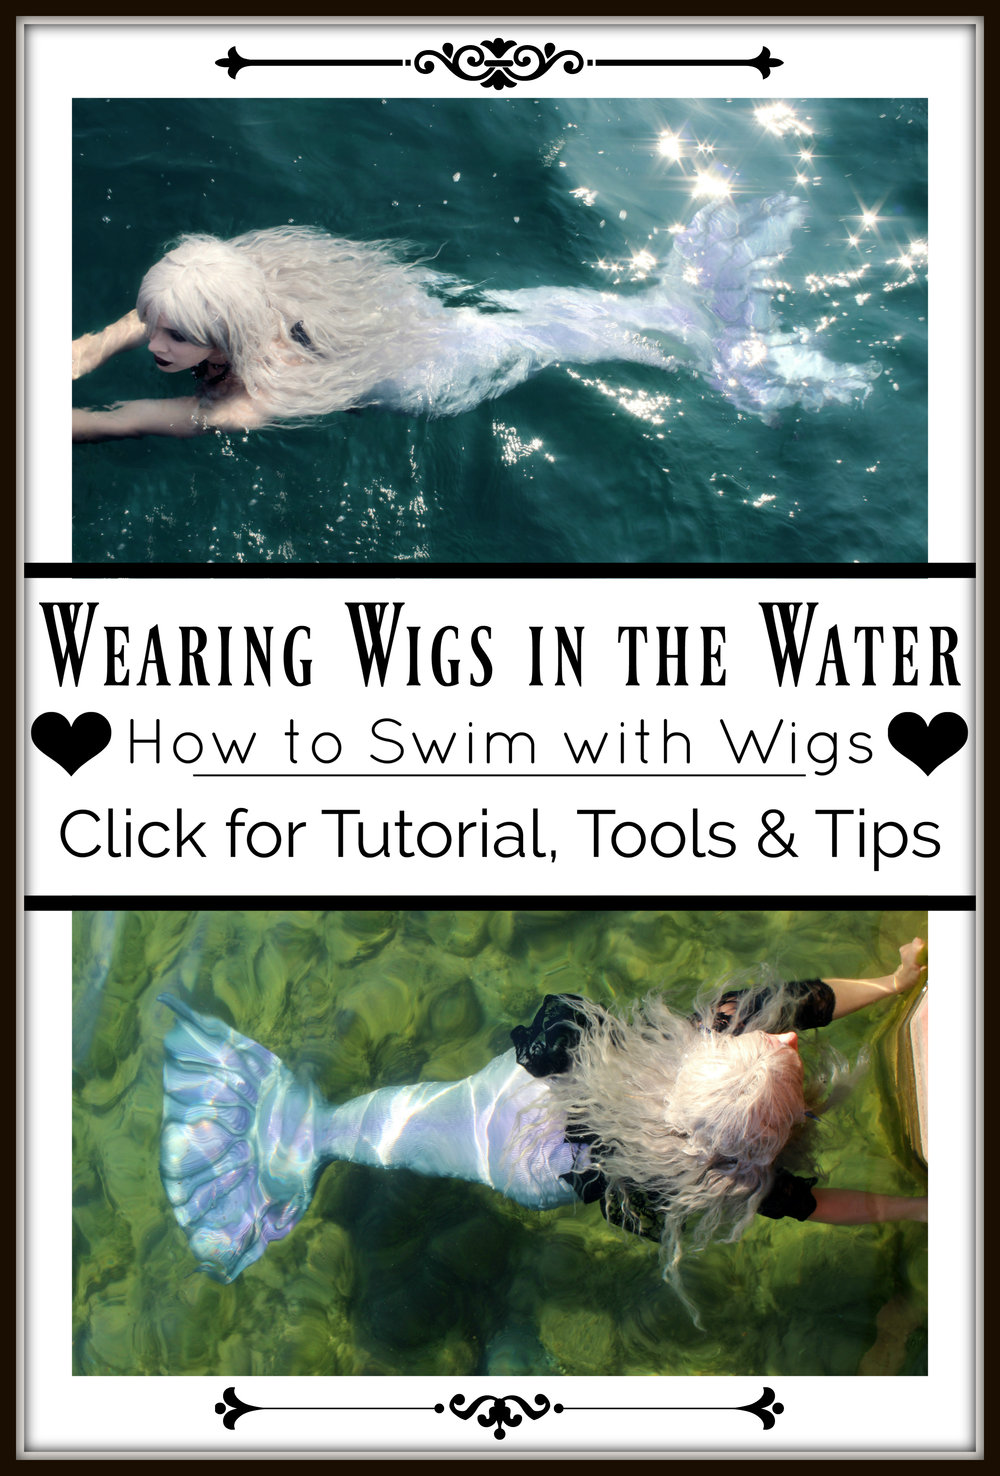 How to Wear Wigs in the Water: Swimming underwater with wigs- Here is a blog post providing tips, tools & a tutorial for cosplayers and Professional Mermaids that want to swim with synthetic hair. CLICK to learn more. ♥